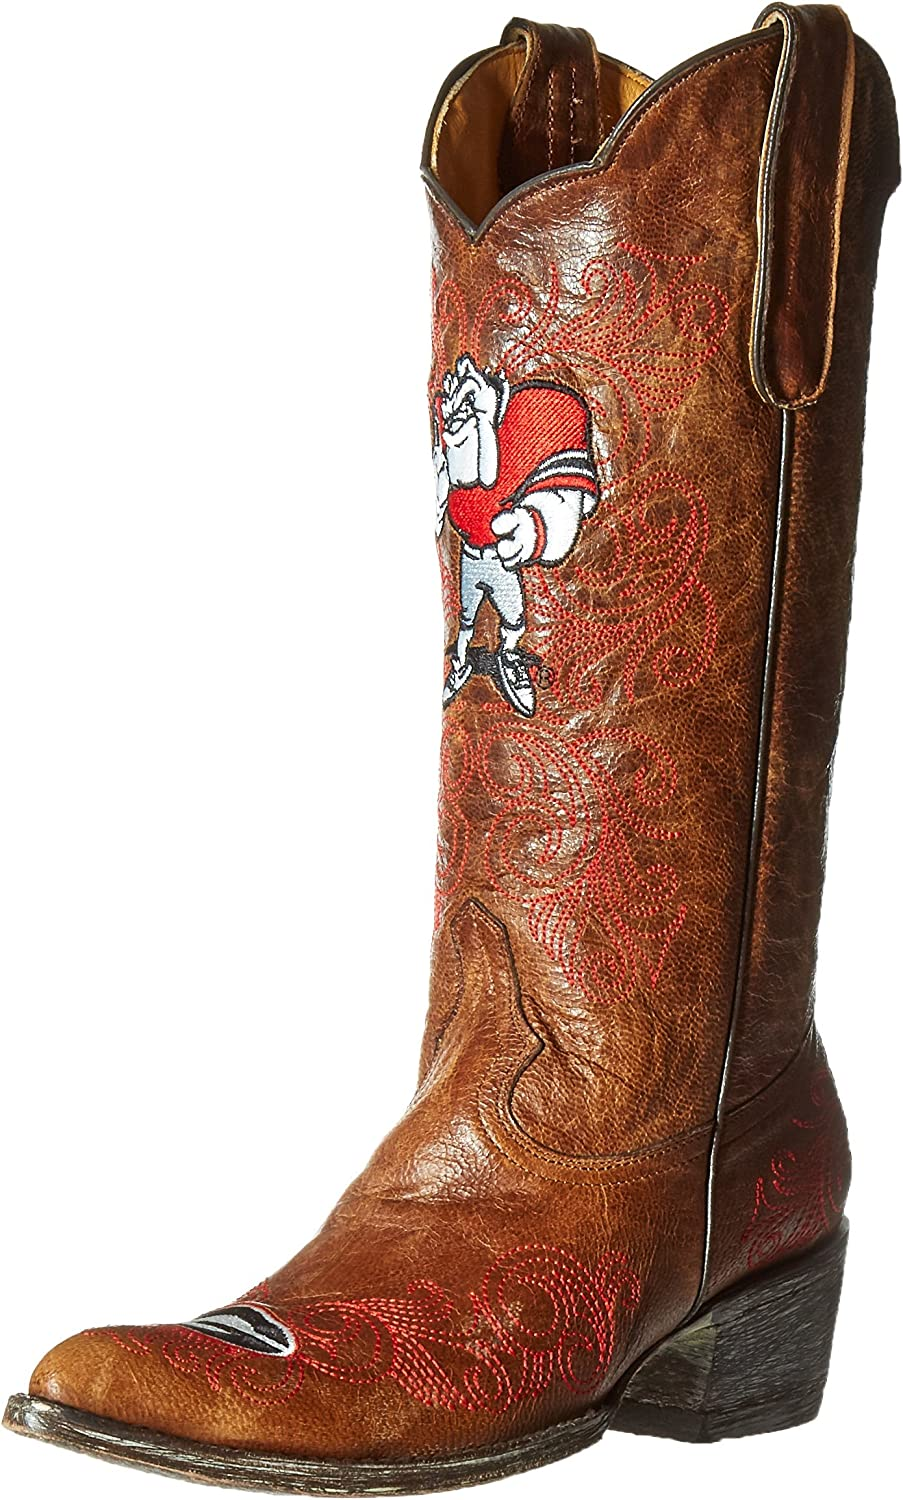 Gameday Boots NCAA New mail order Ranking integrated 1st place Womens Ladies 13 University inch Boot